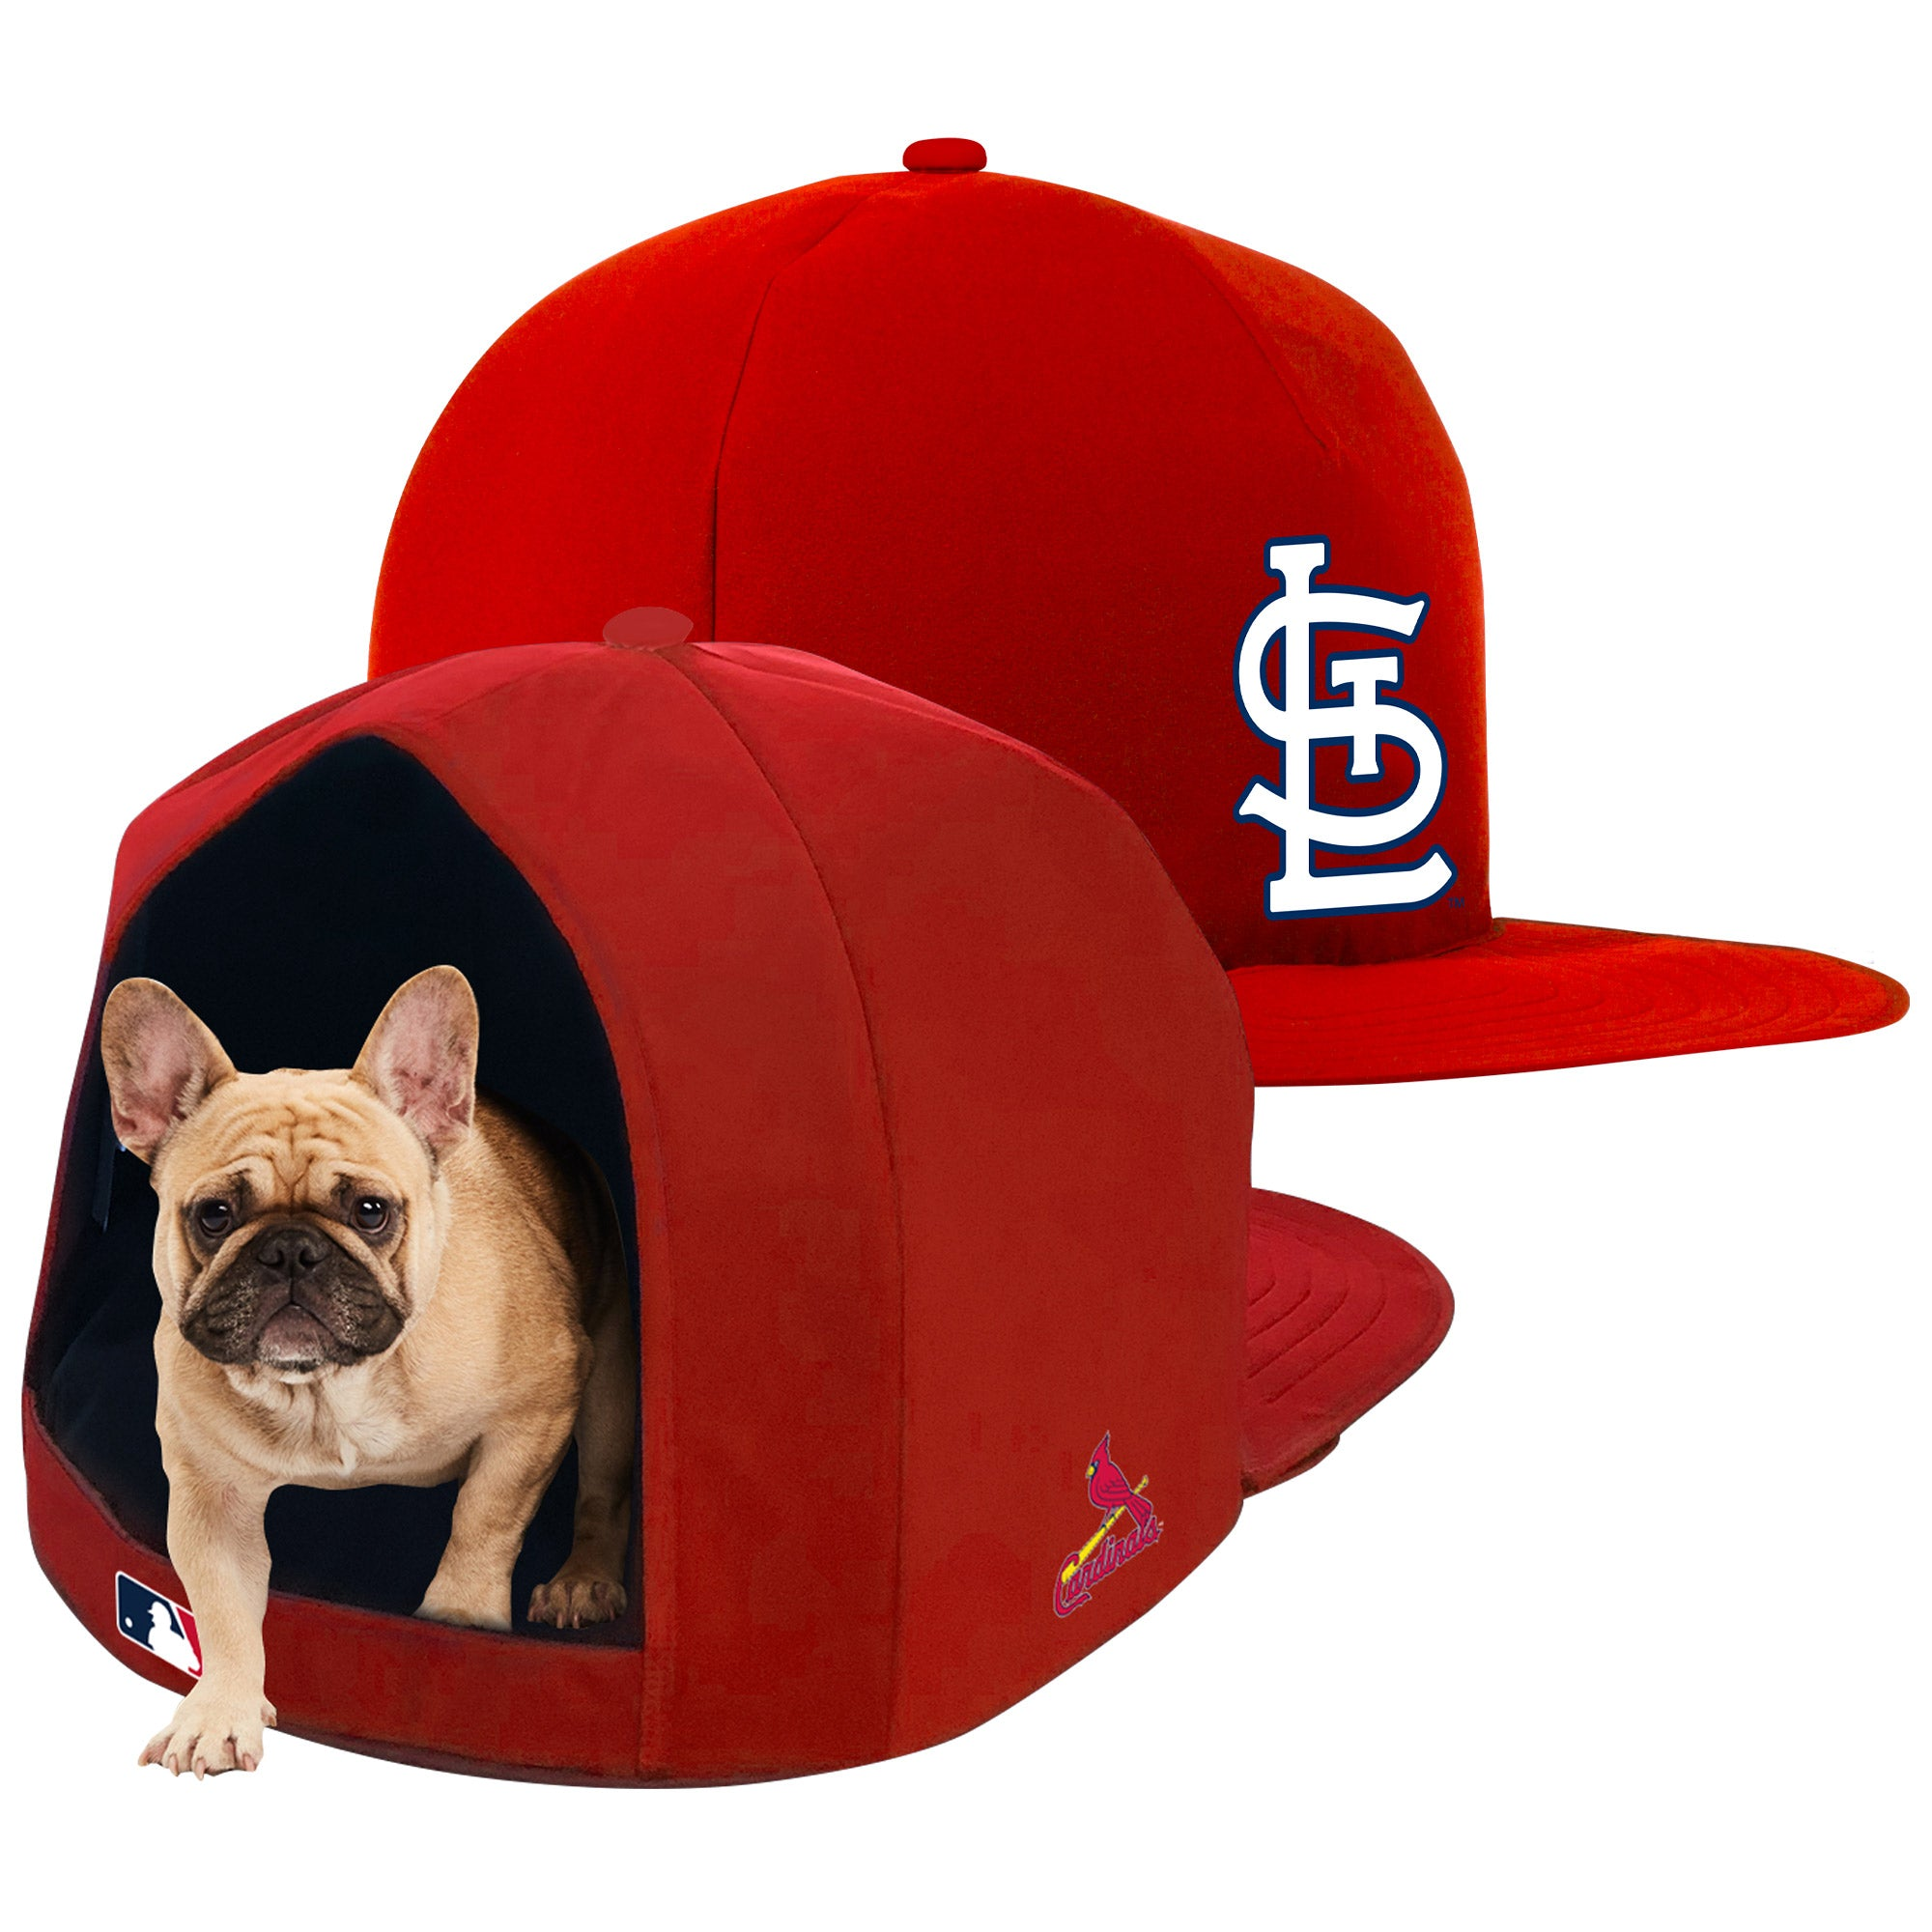 St. Louis Cardinals Nap Cap Plush Dog Bed